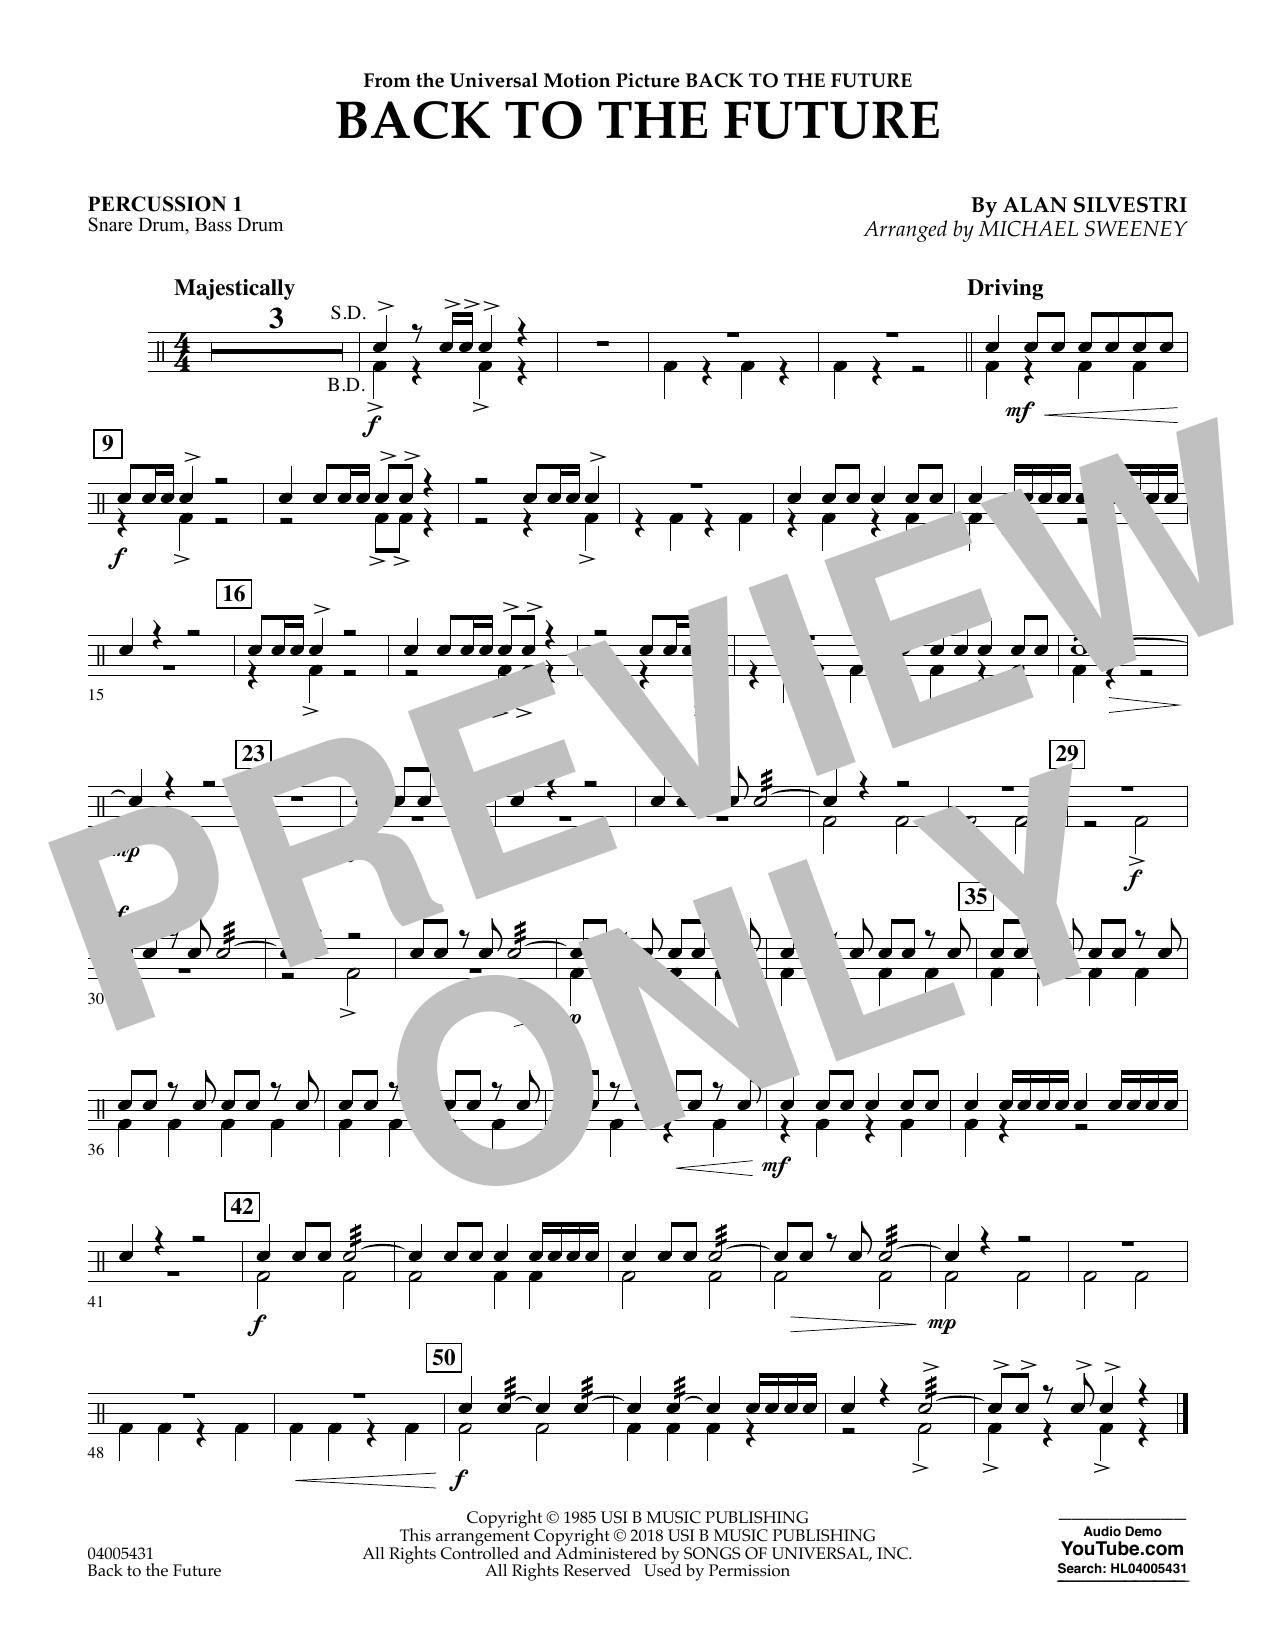 Back to the Future - Percussion 1 (Concert Band)